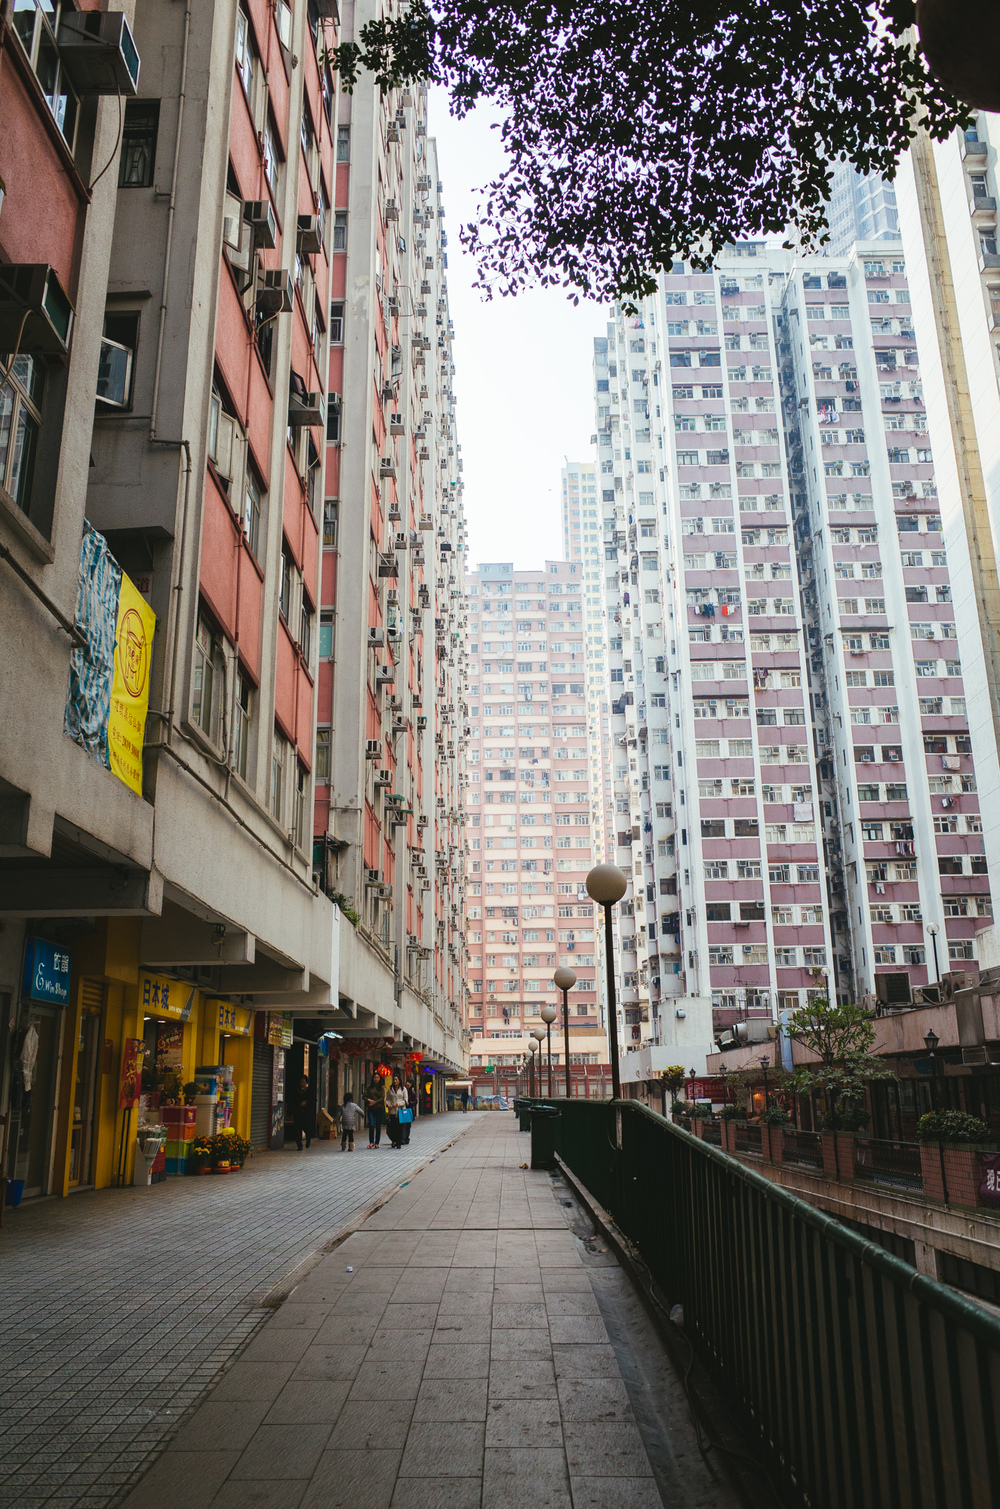 I'm currently residing in HKU's Residential Colleges in Sai Wan. Just down the steep decline is the humble Kennedy Town. Government housing, small restaurants and construction. I often traverse the same route down in order to travel to various locations in Hong Kong and Kowloon alike, and I can't help but admire the verticality and leading lines every corner I turn.